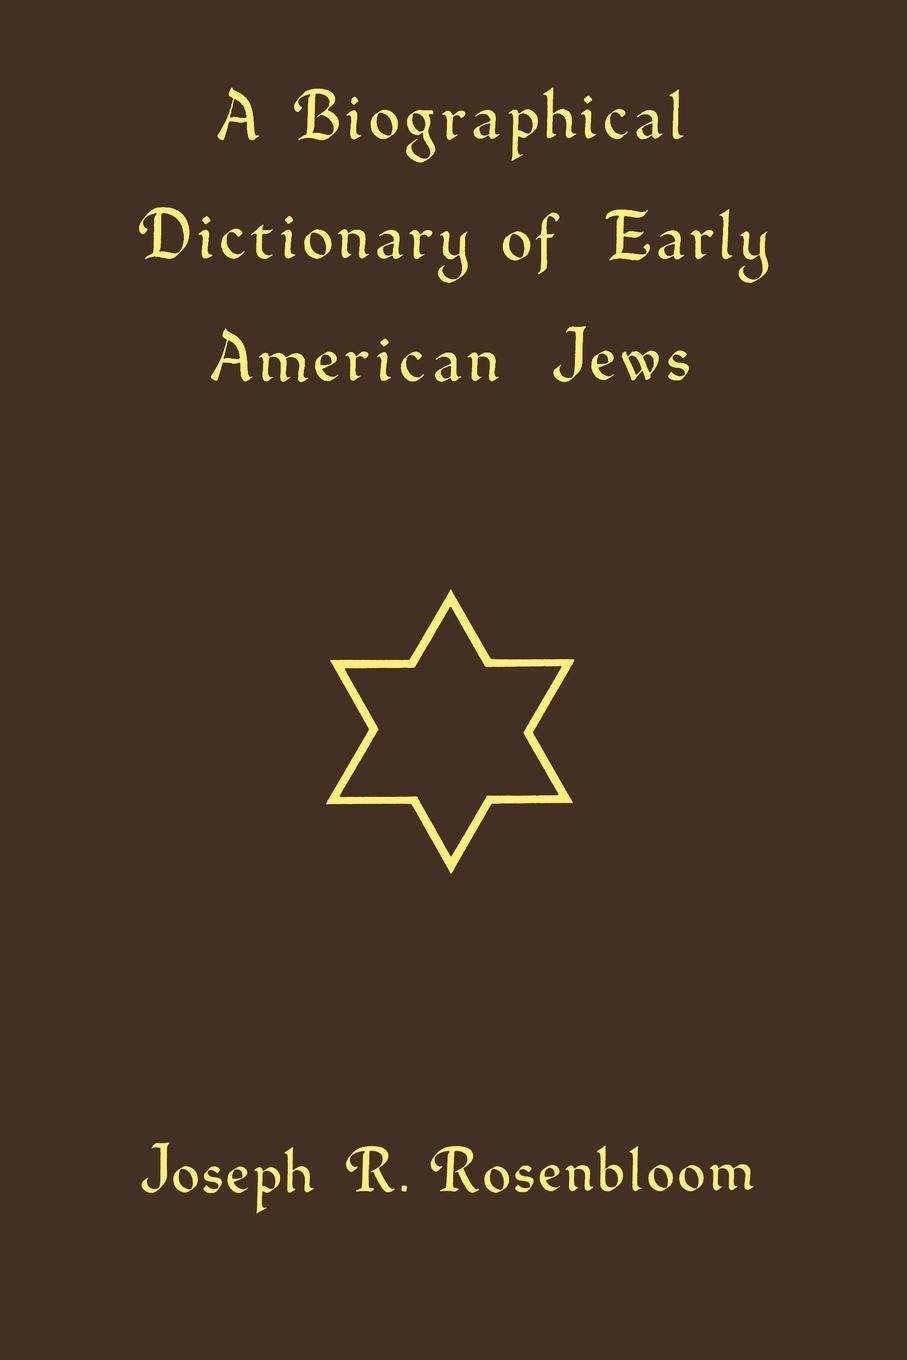 A Biographical Dictionary of Early American Jews: Colonial Times through 1800